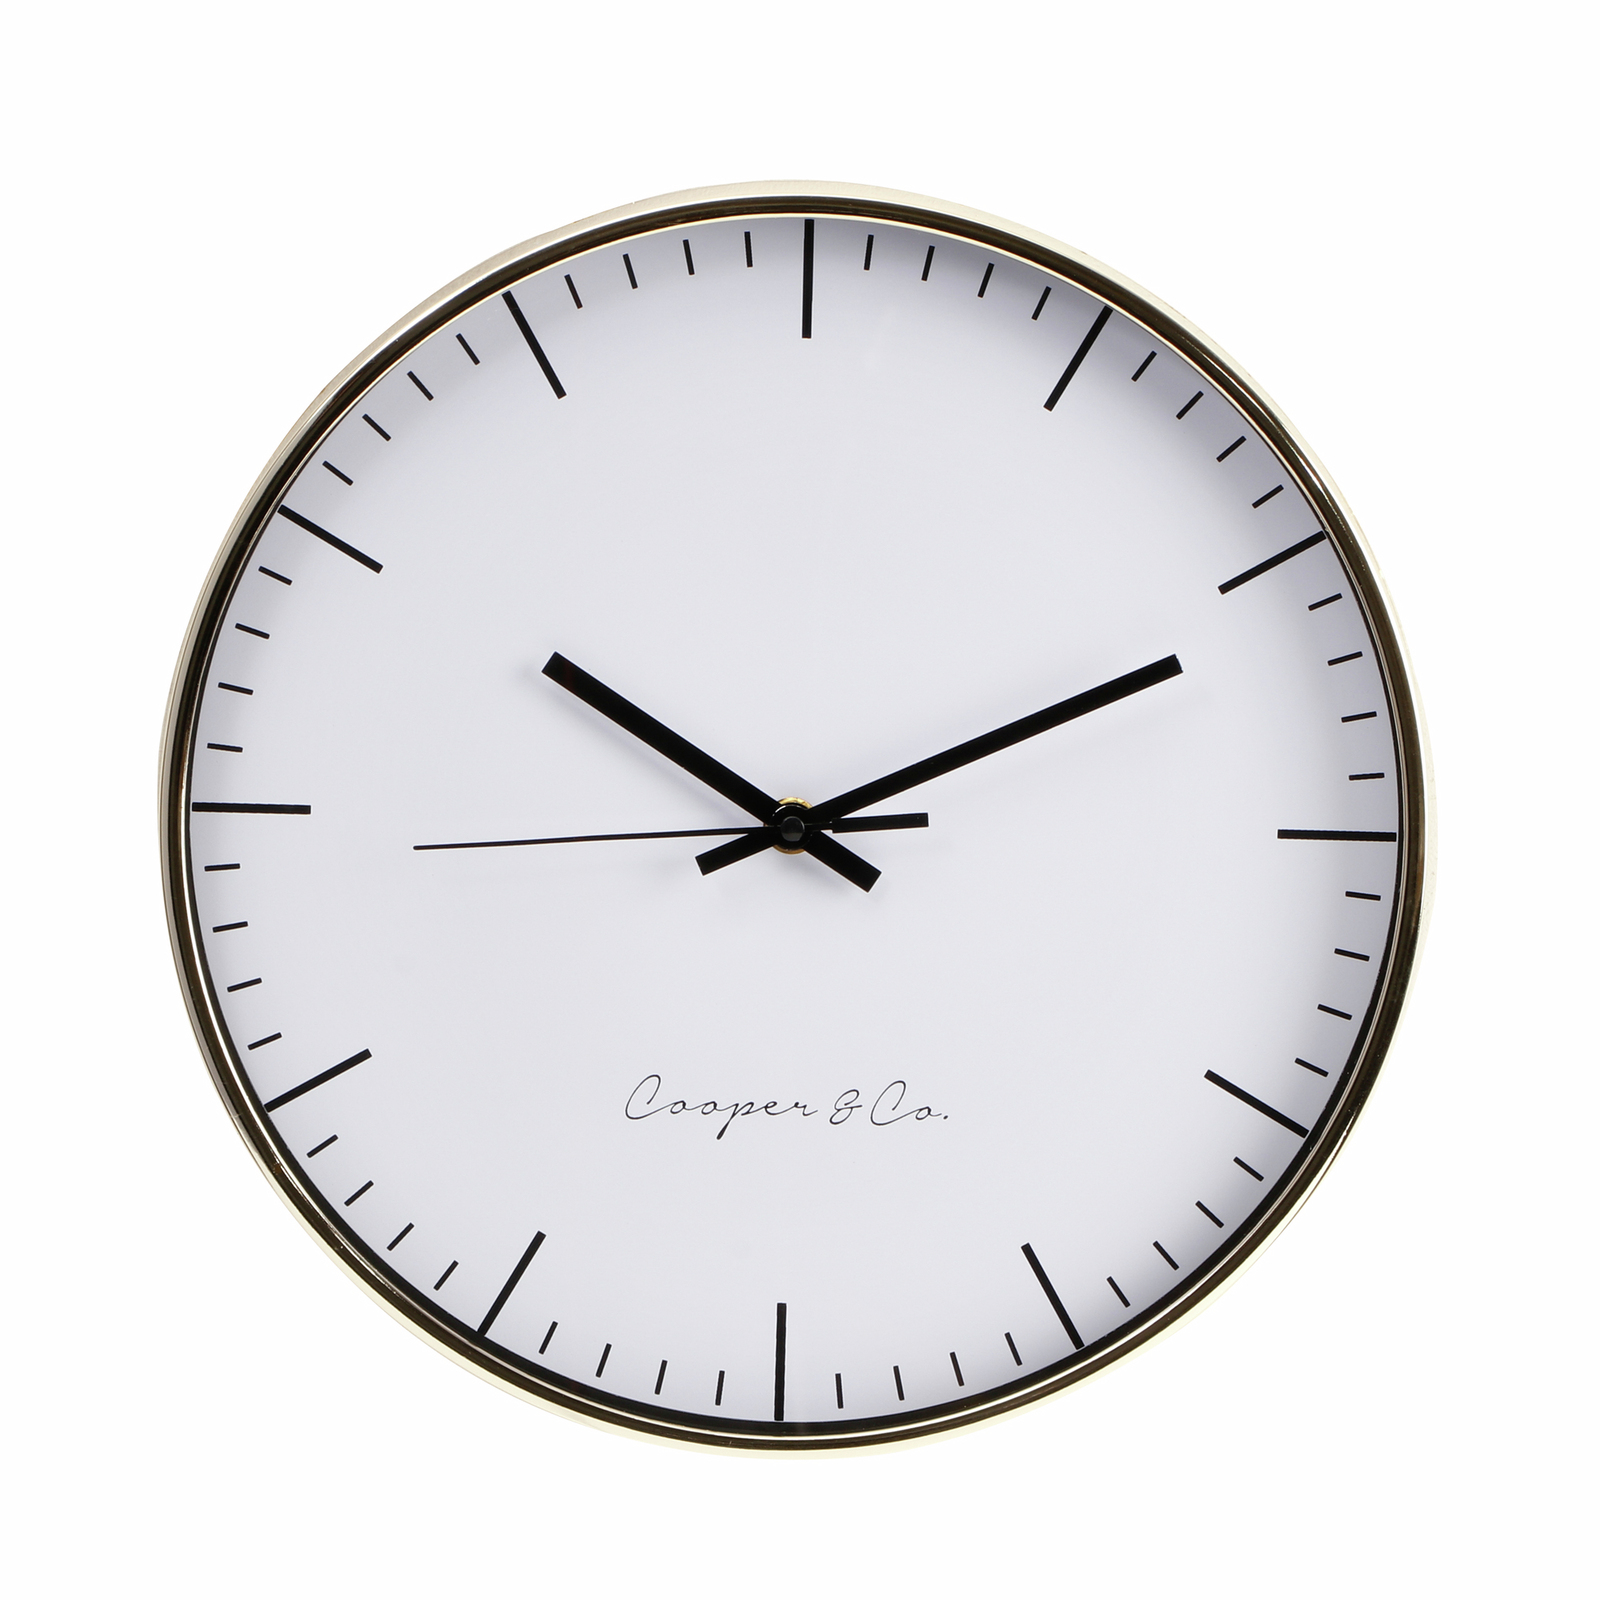 Cooper & Co. 30cm Gold Nelson Silent Movement Round Wall Clock